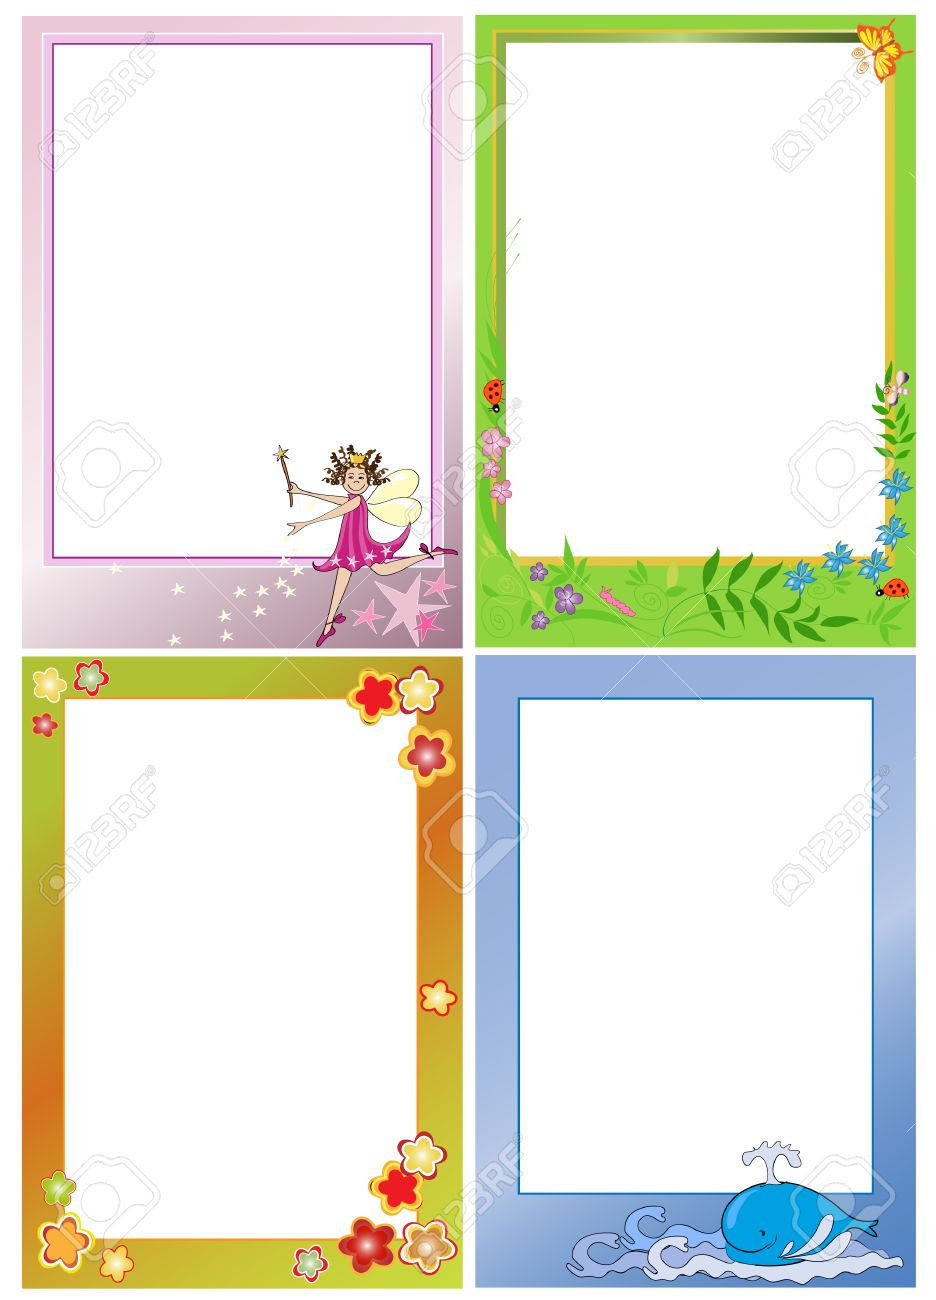 Four Photo Frames For Kids. Portrait View. Royalty Free Cliparts ...